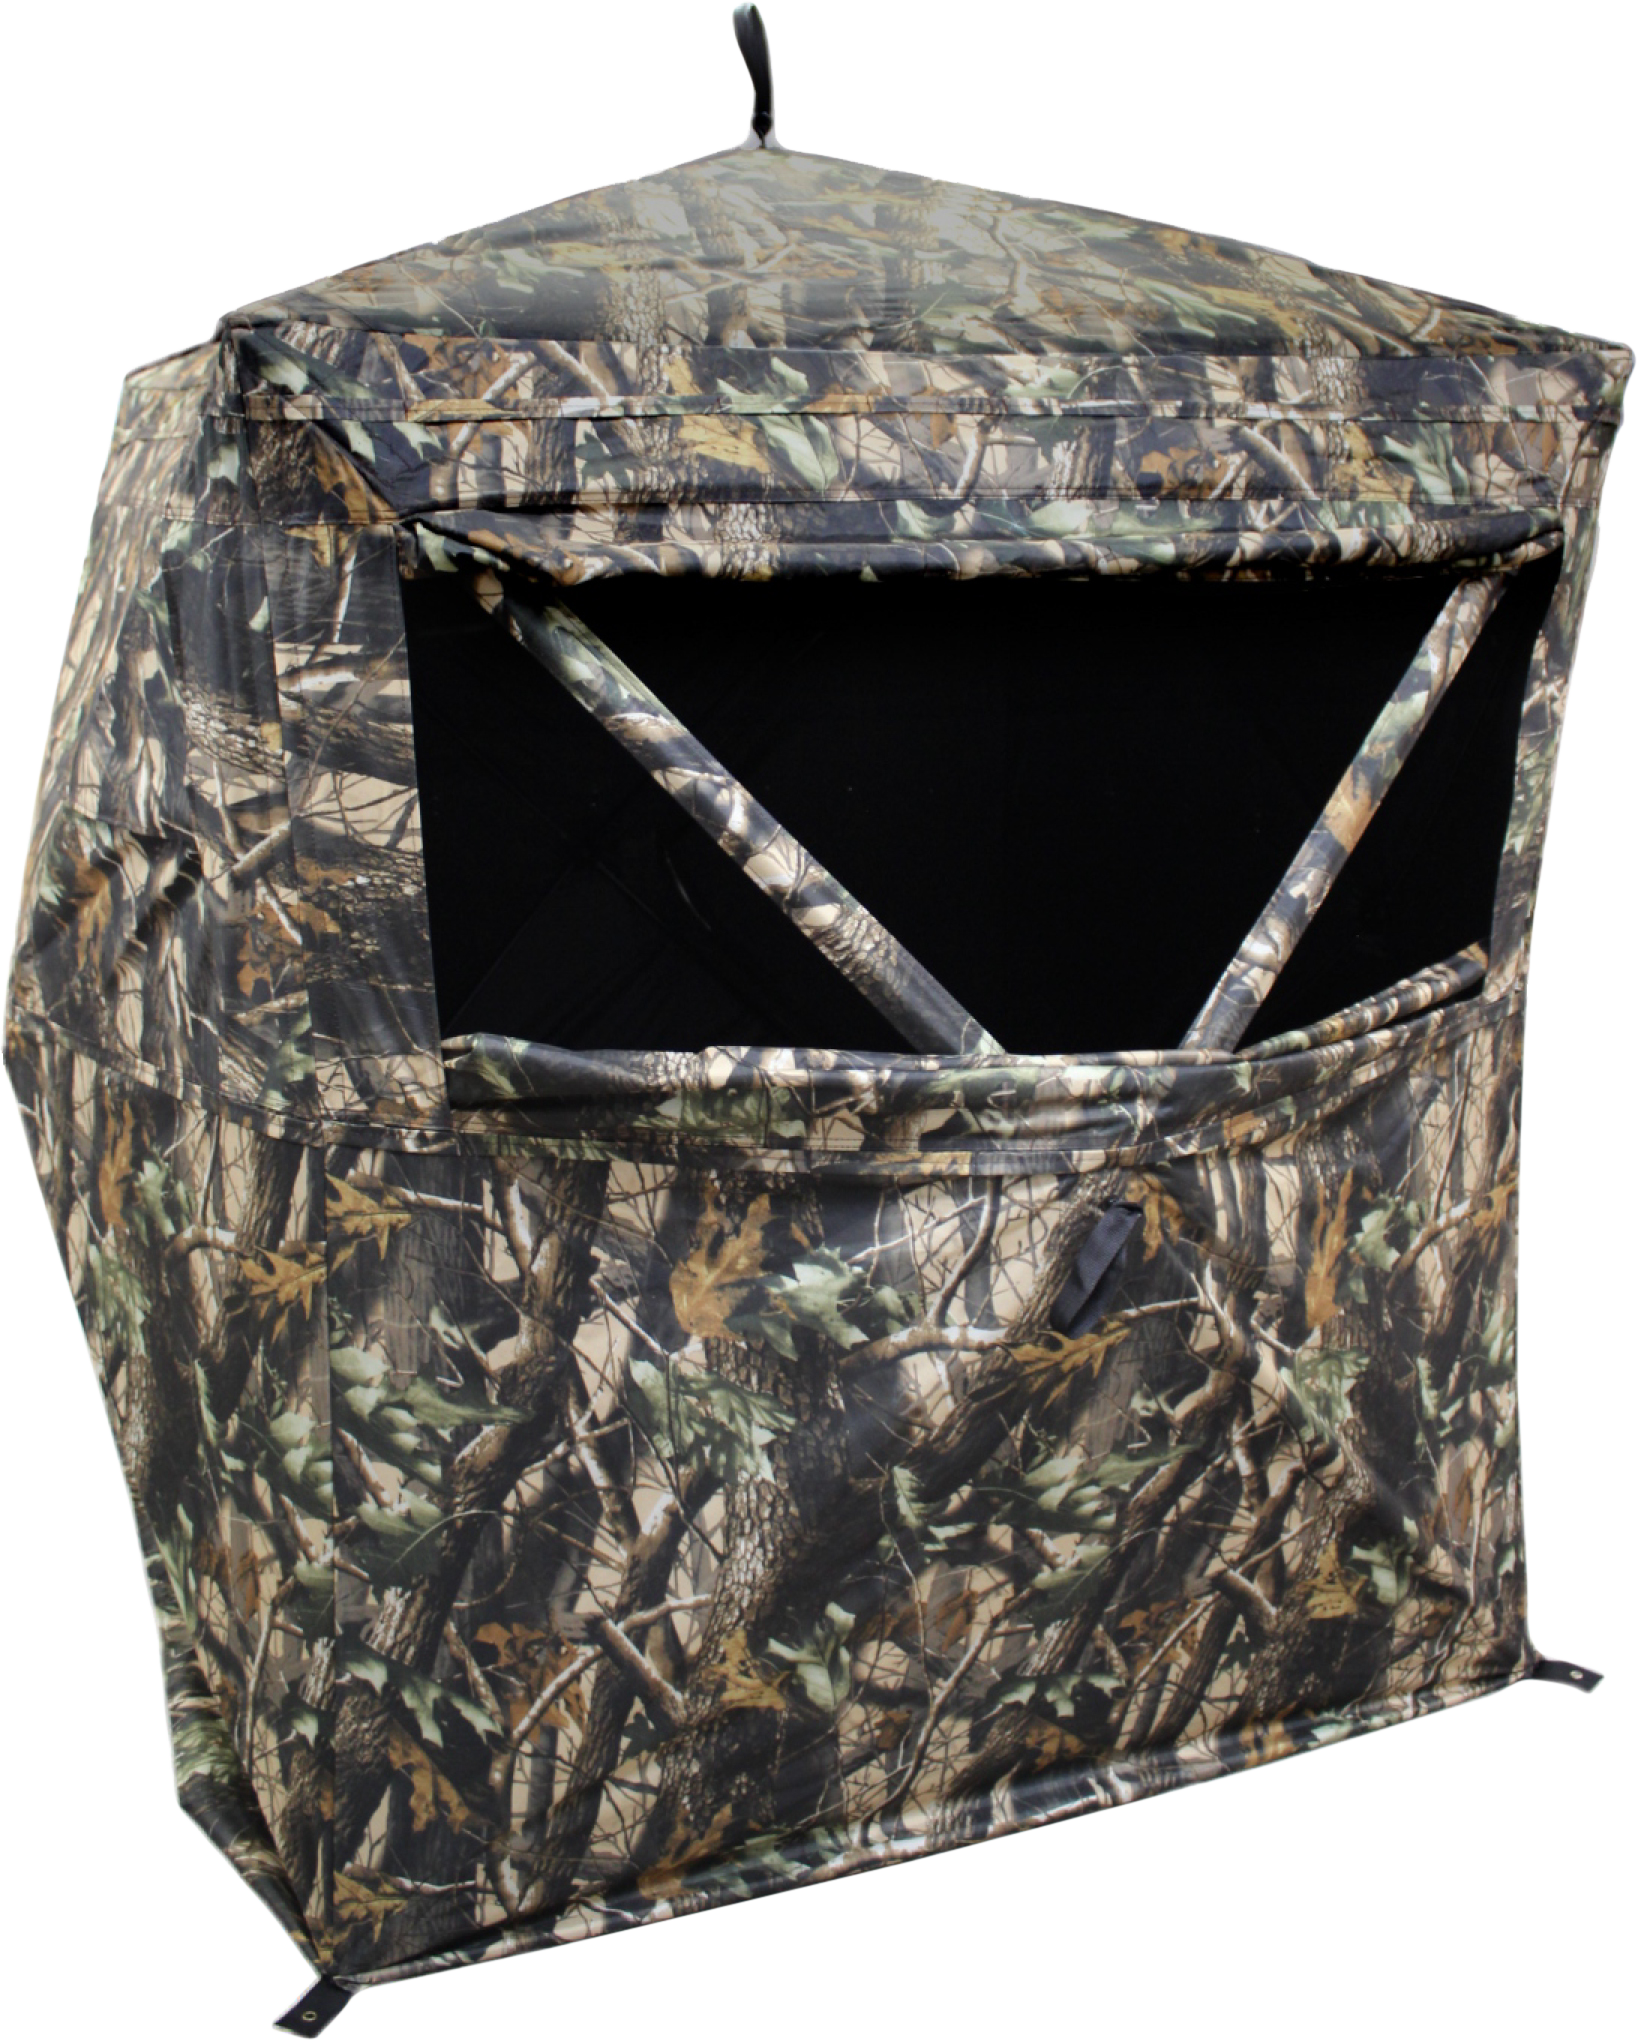 HME Executioner 2-Person Ground Blind - Camo